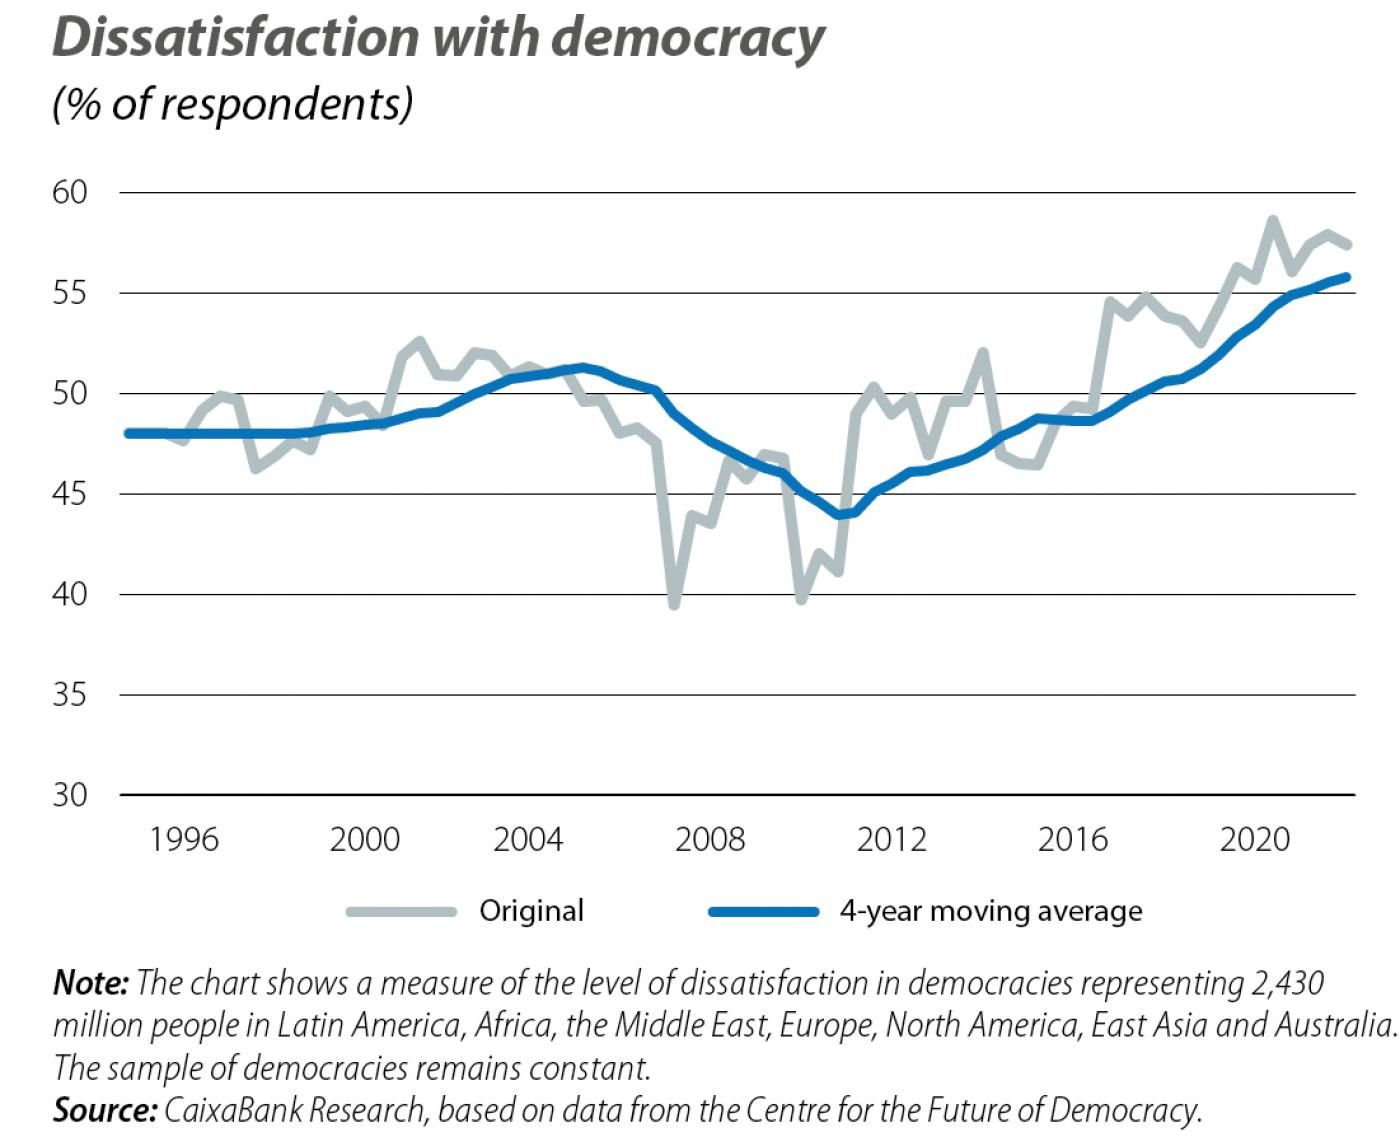 Dissatisfaction with democracy